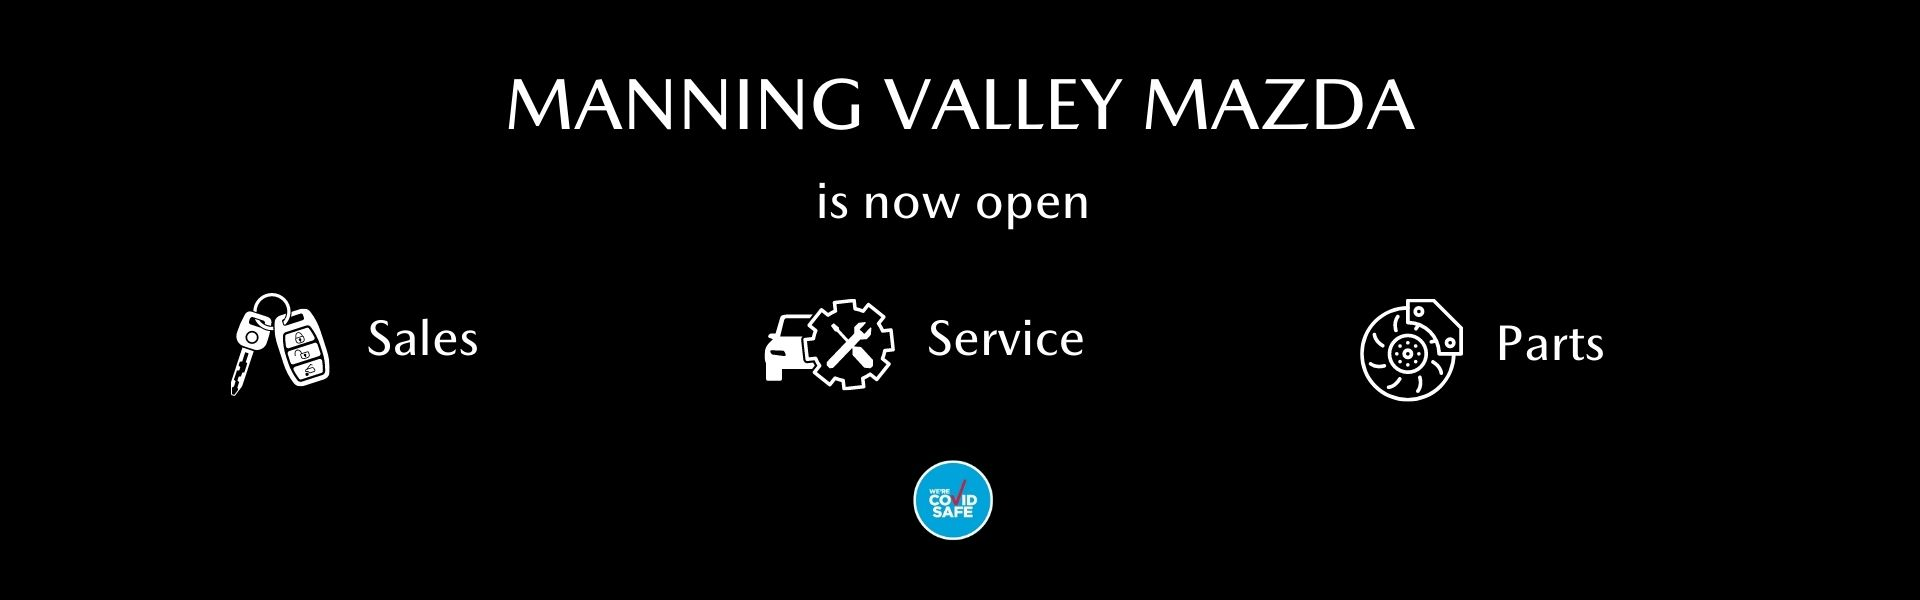 Manning Valley Mazda is now open